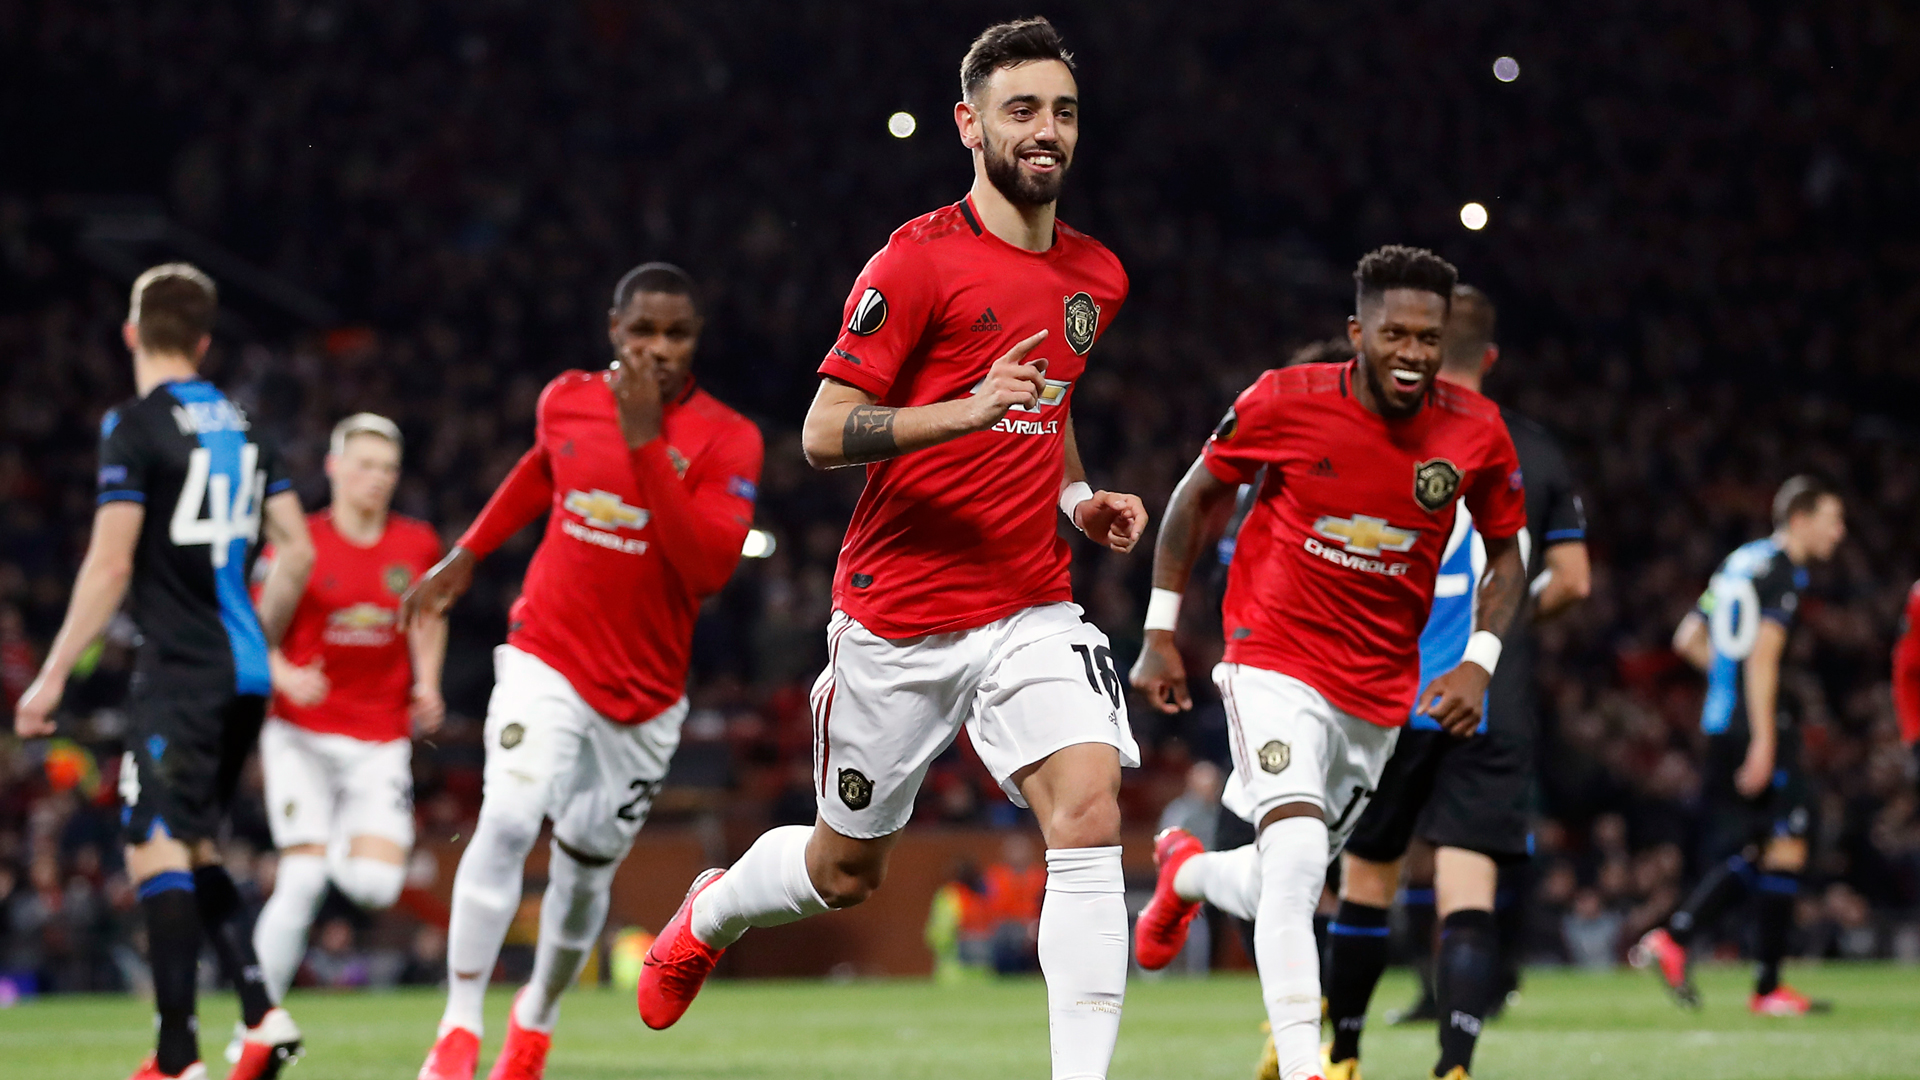 soi-keo-manchester-united-vs-bournemouth-luc-21h-ngay-4-7-2020-1